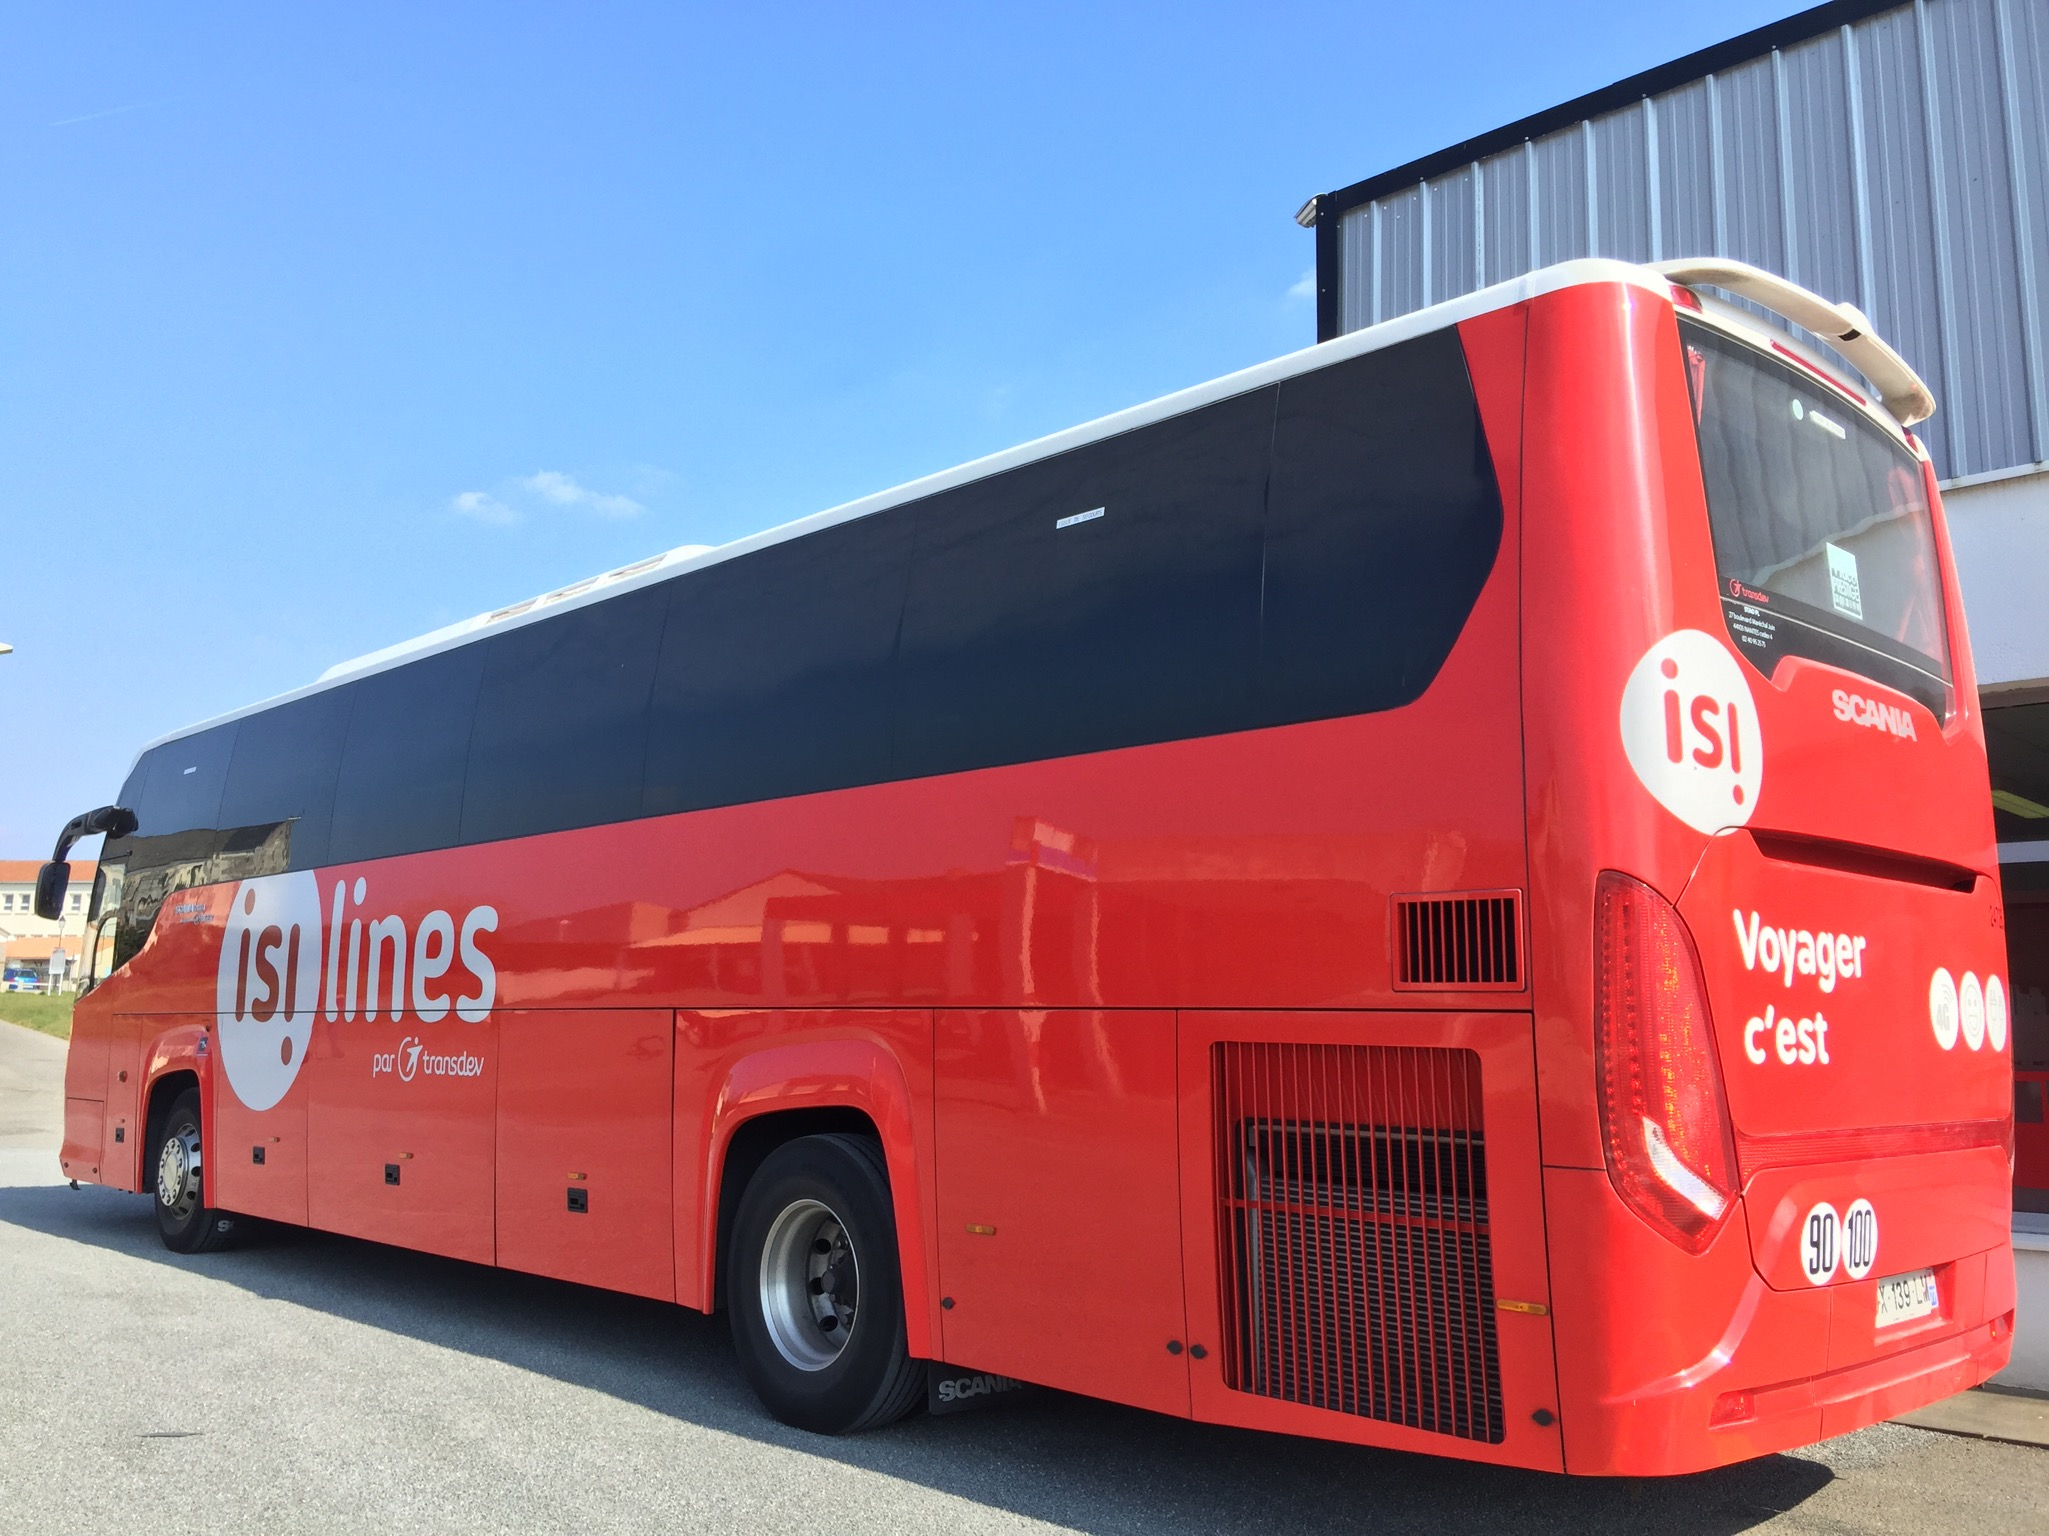 Scania ISILINES